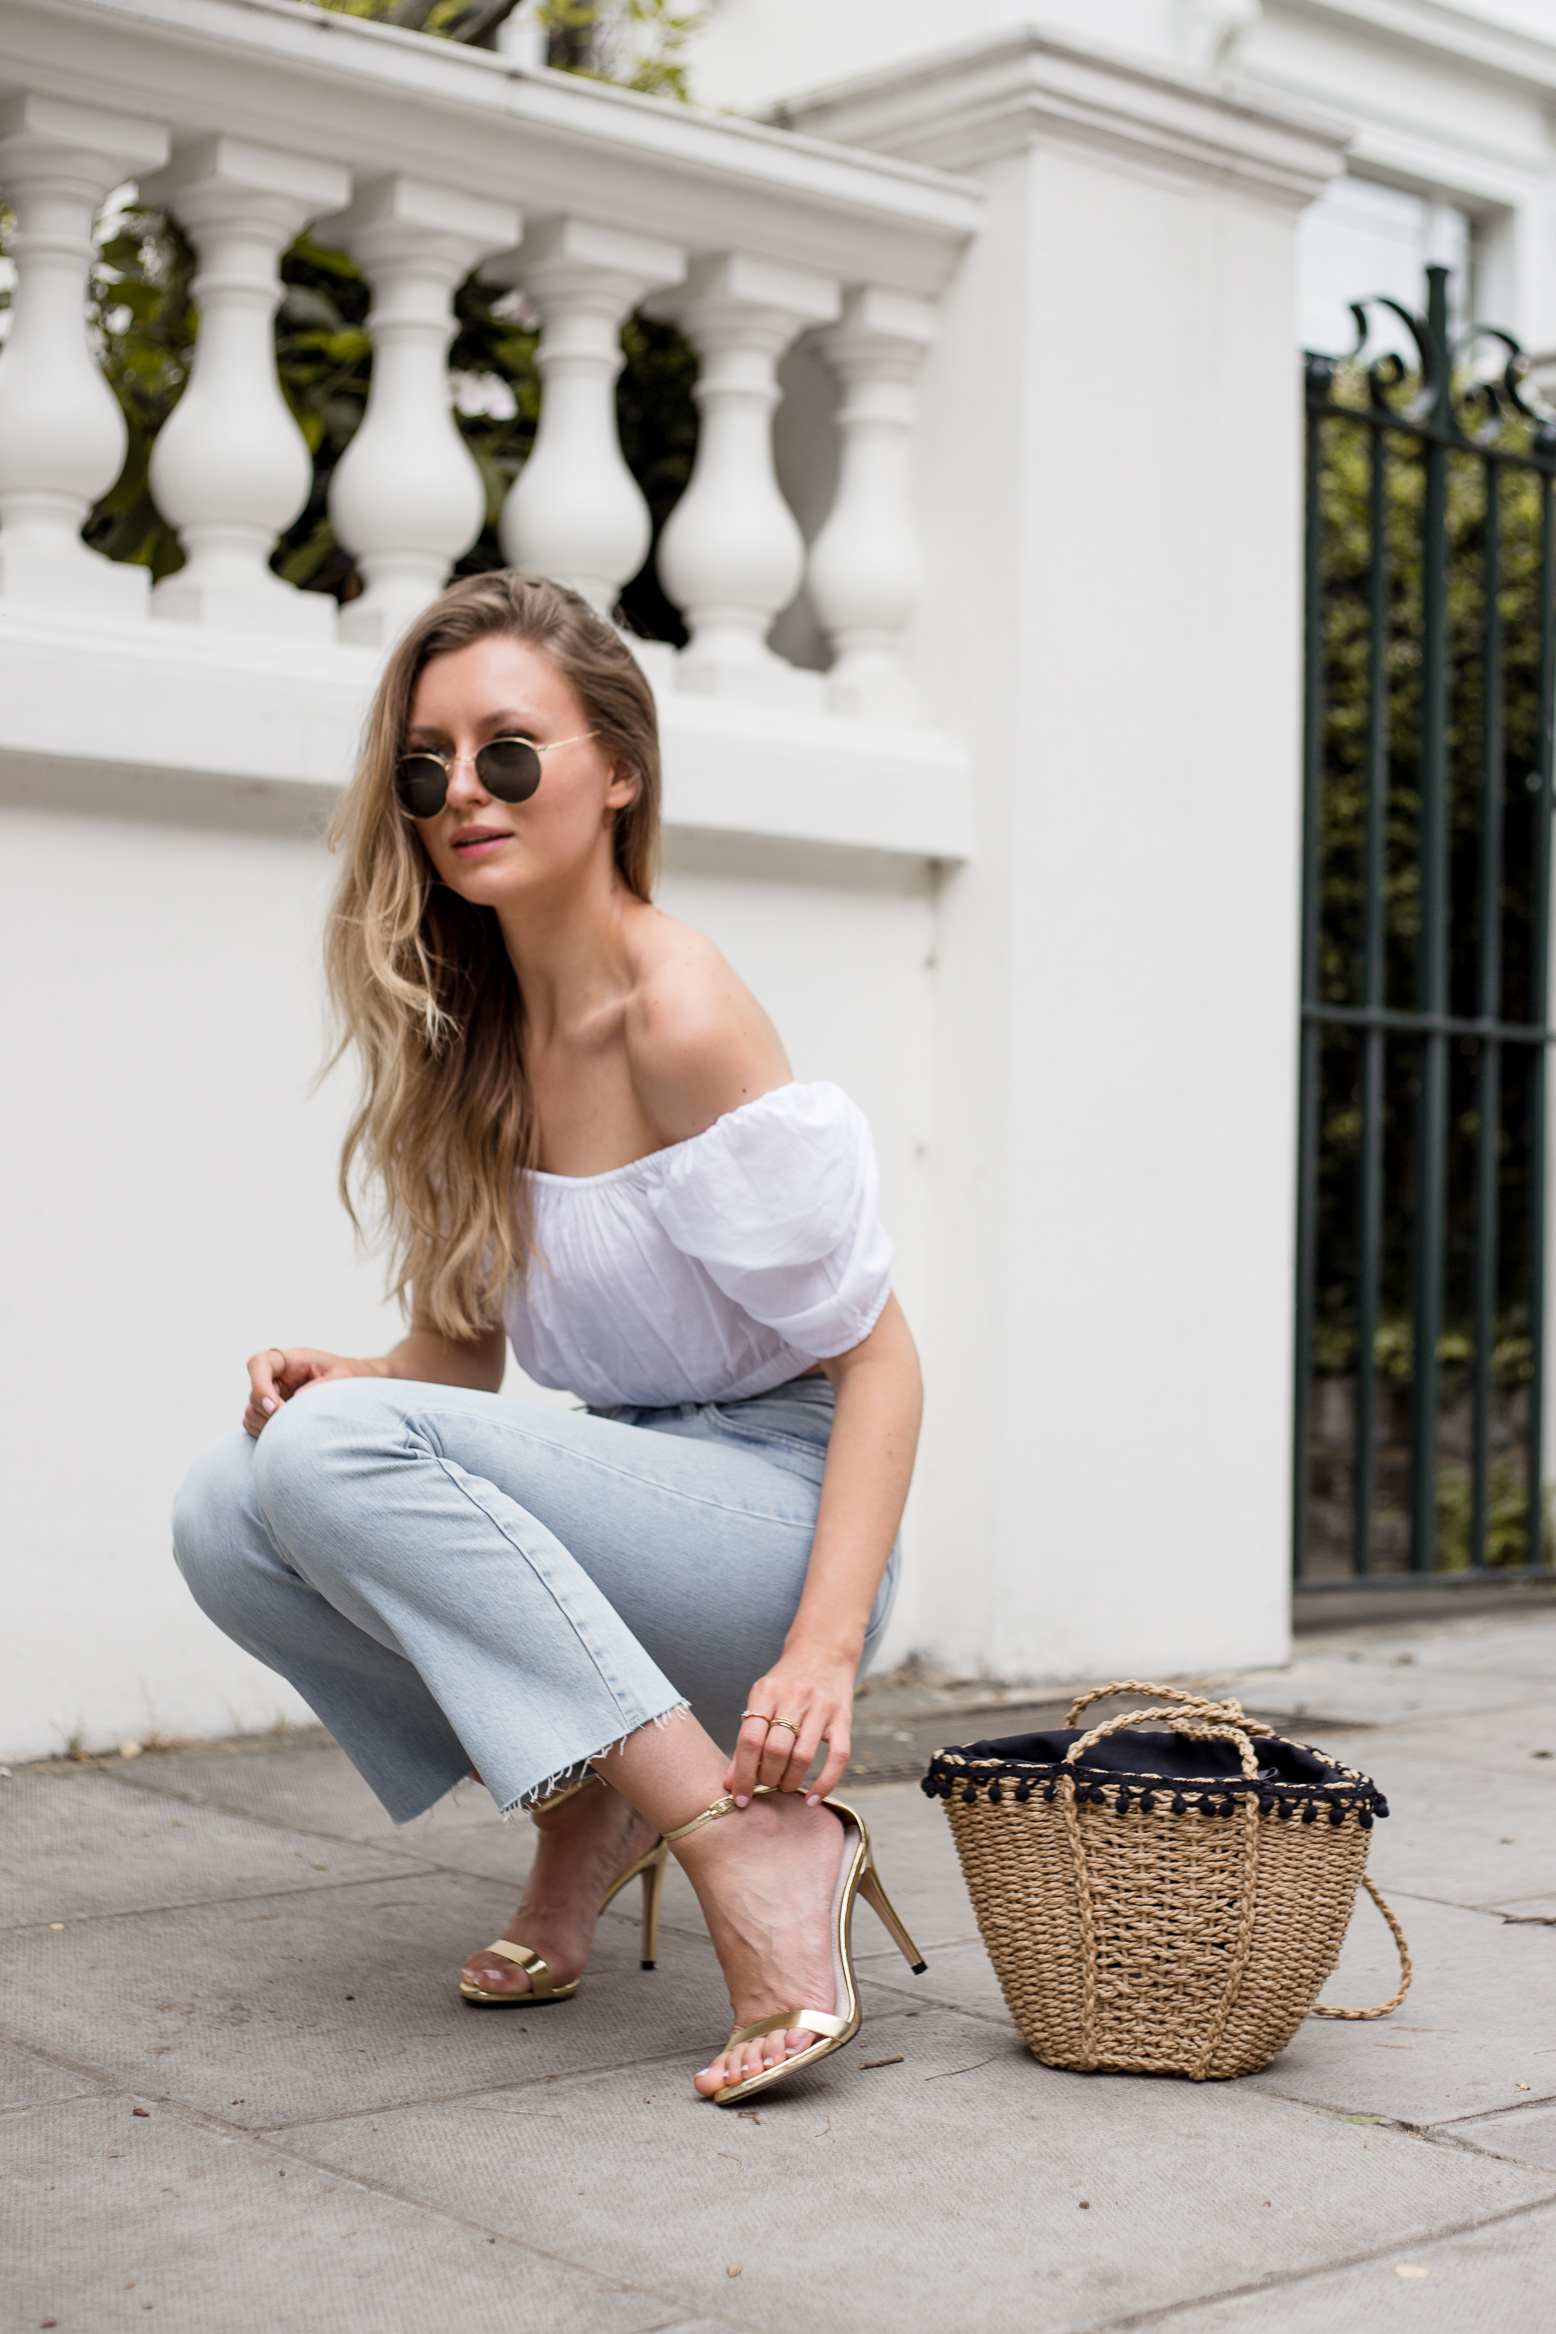 crop-top-raw-edge-denim-outfit-livia-auer-8068